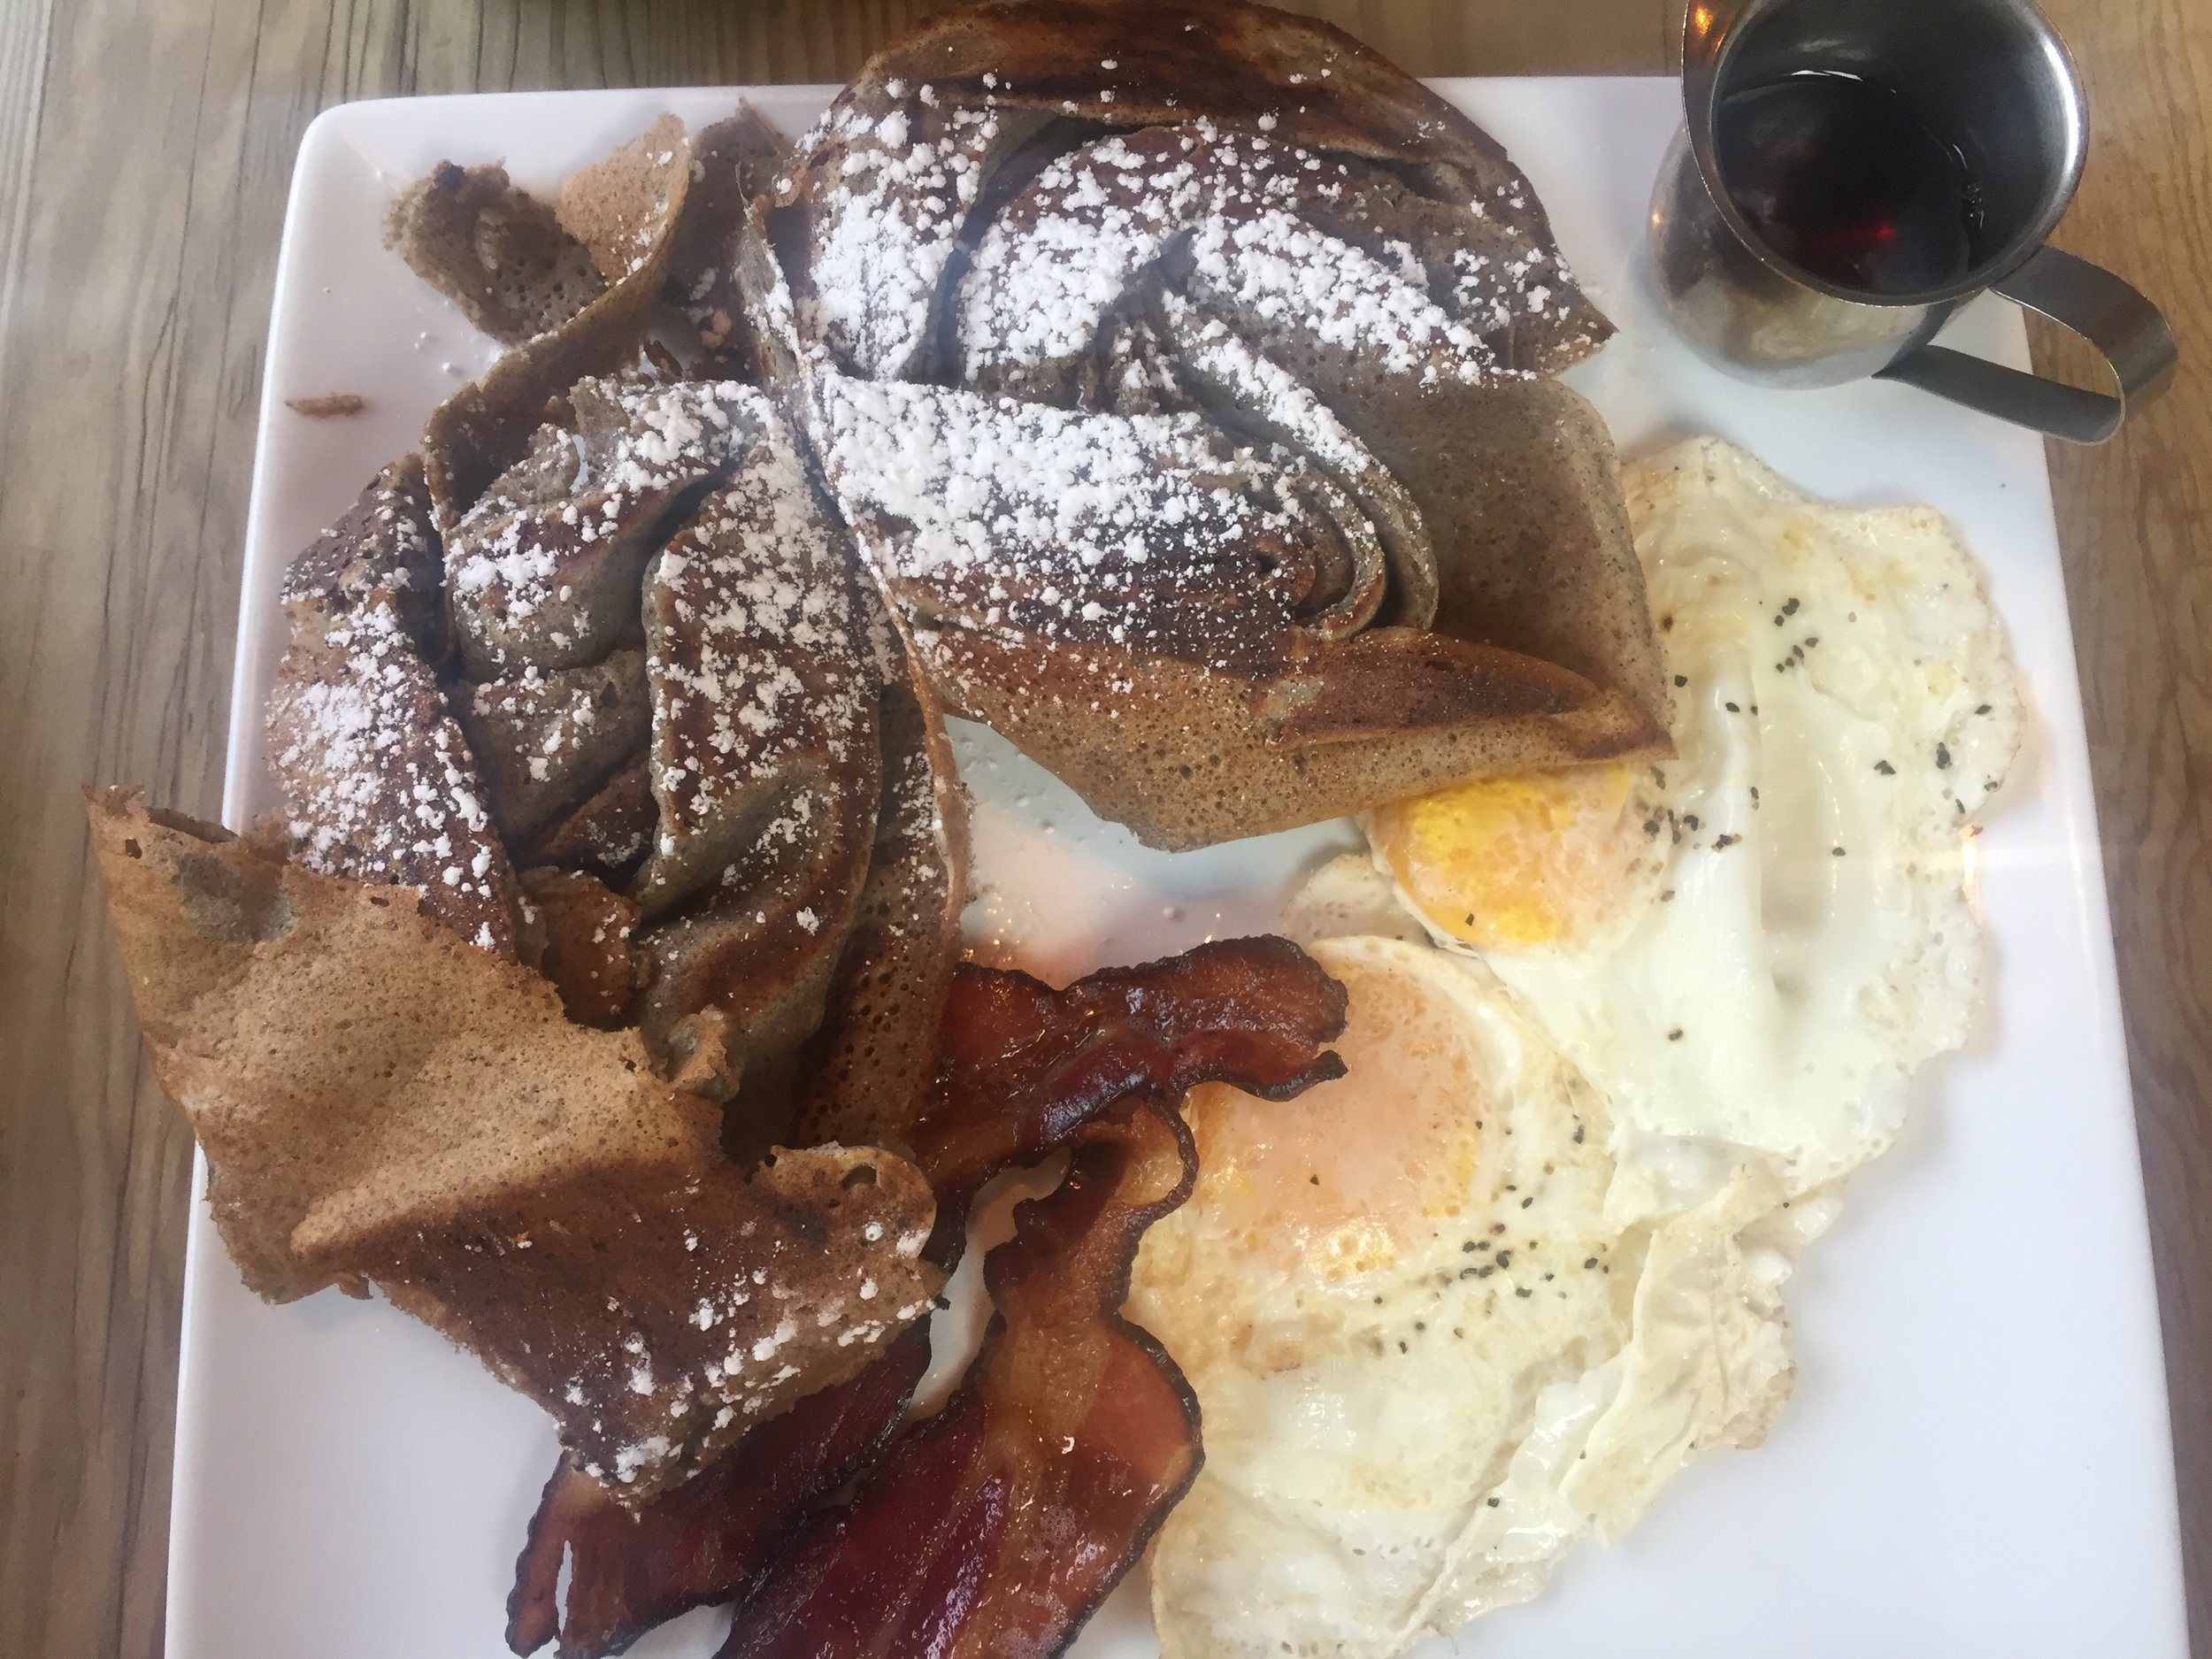 Buckwheat crepes with local bacon and eggs.